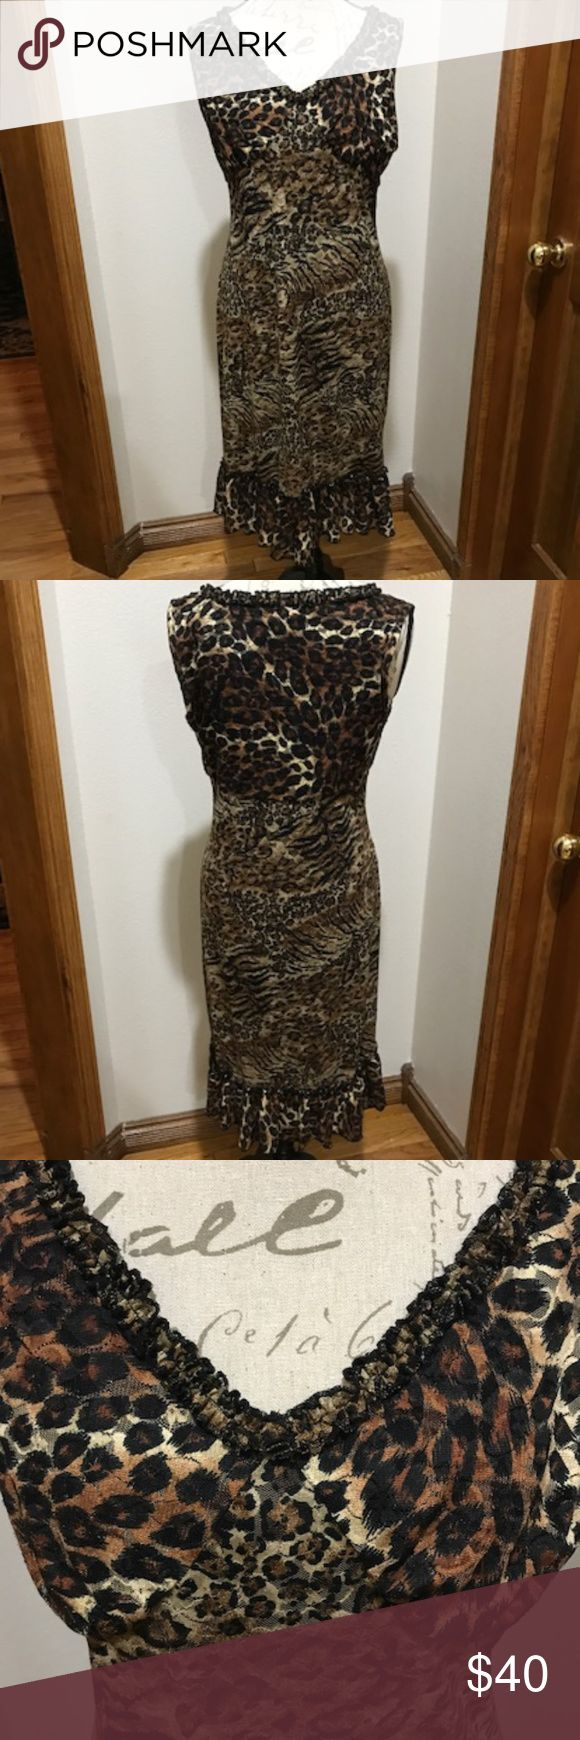 Karen Kane Sleeveless Shealth Dress EUC, only worn one time.  Beautiful! Ruffle detail around the neck and the bottom.  Hits at the knees, has a build in full slip. Karen Kane Dresses Midi